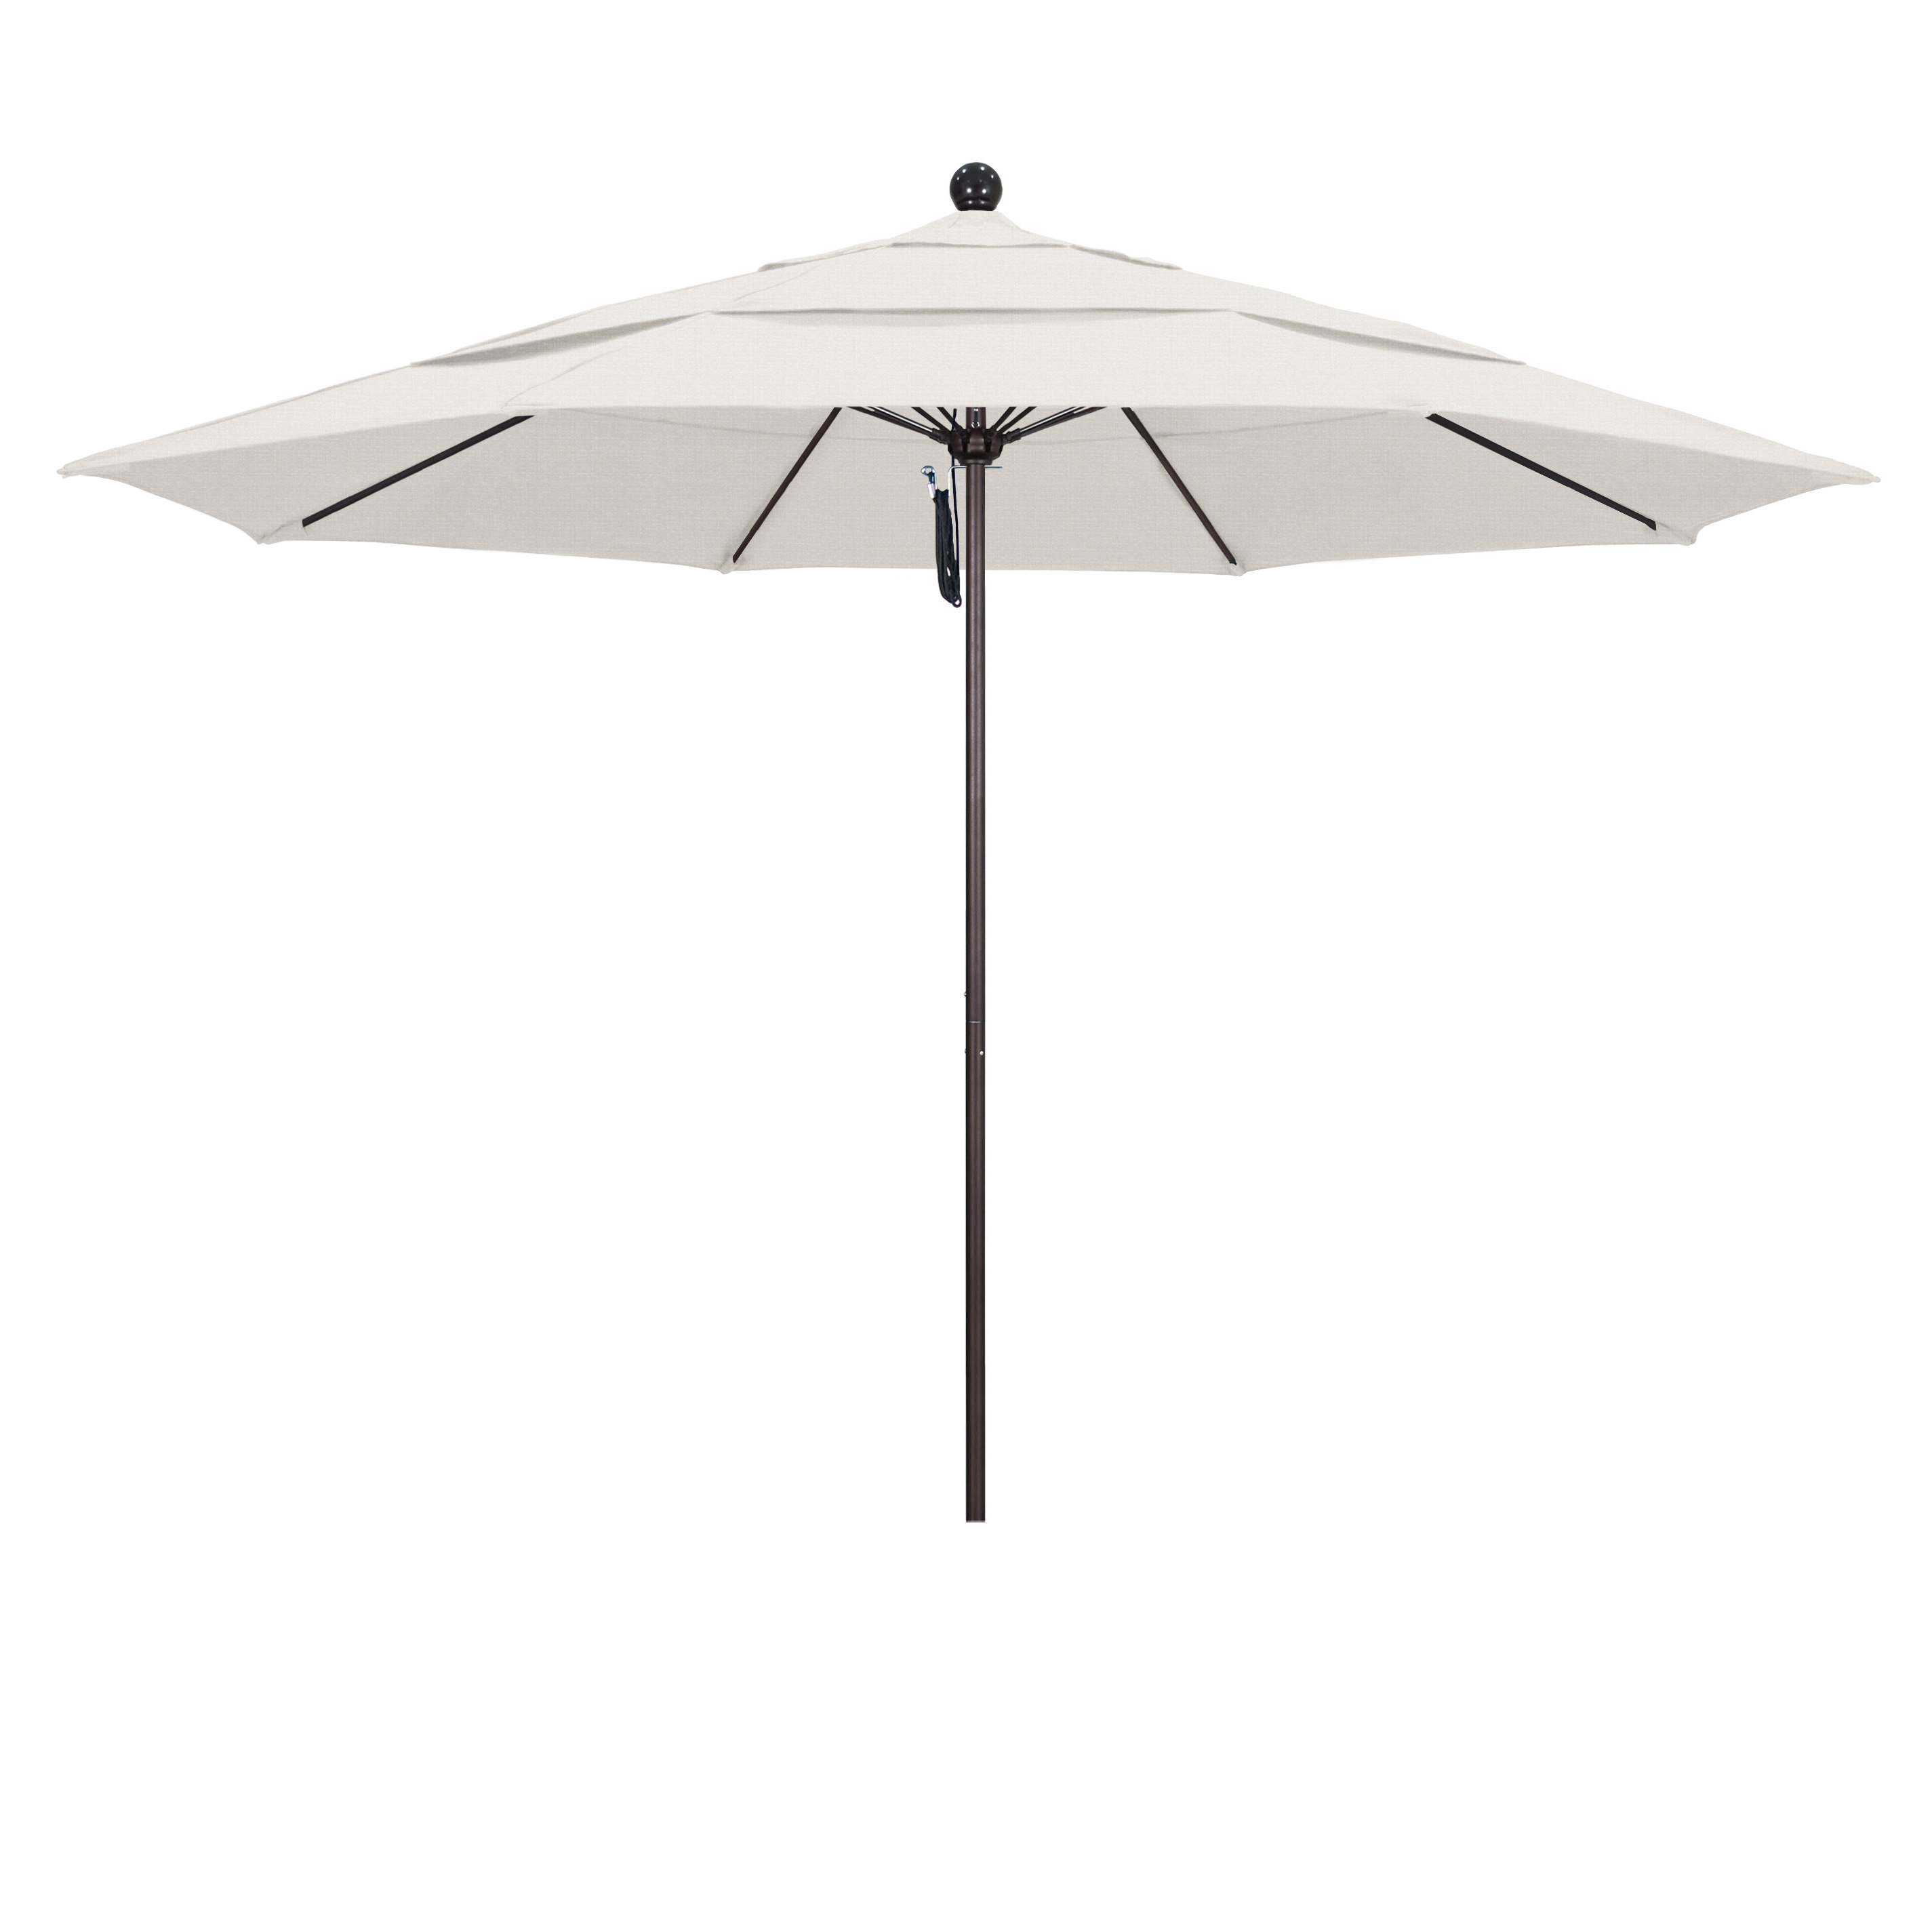 Most Popular Davenport 11' Market Umbrella Regarding Caravelle Market Umbrellas (View 18 of 20)